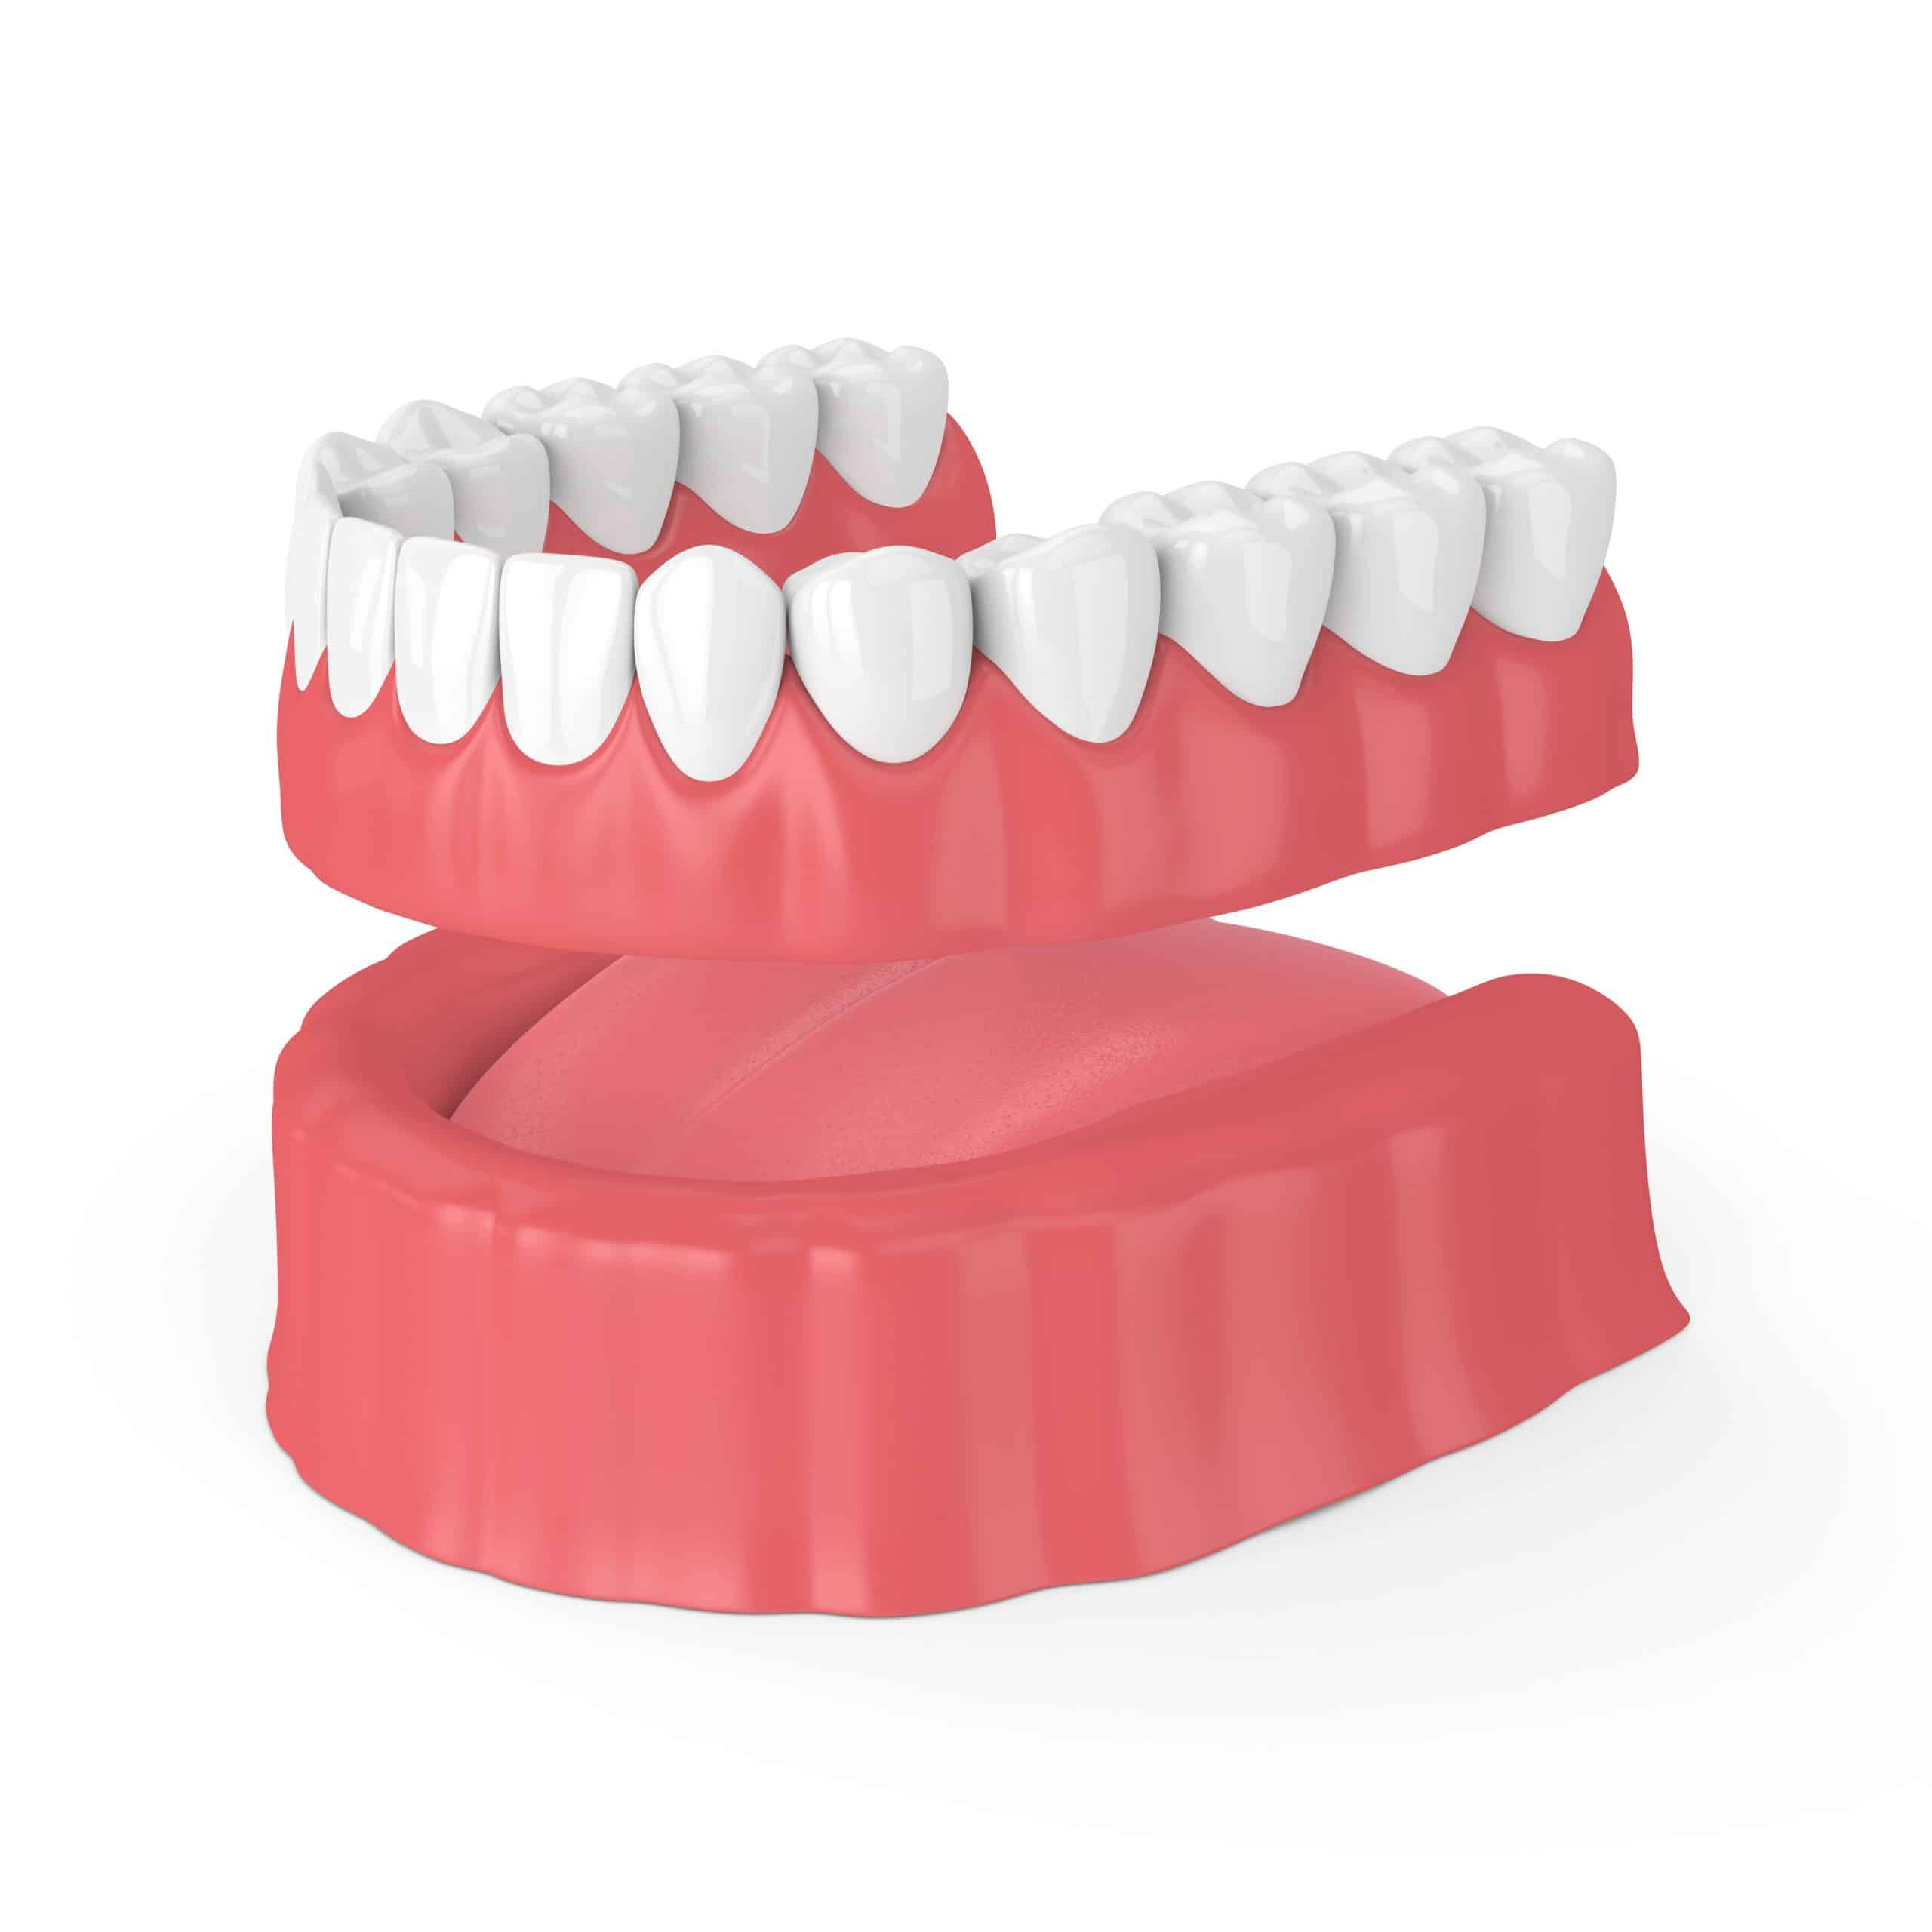 3d render of removable full denture isolated over white background